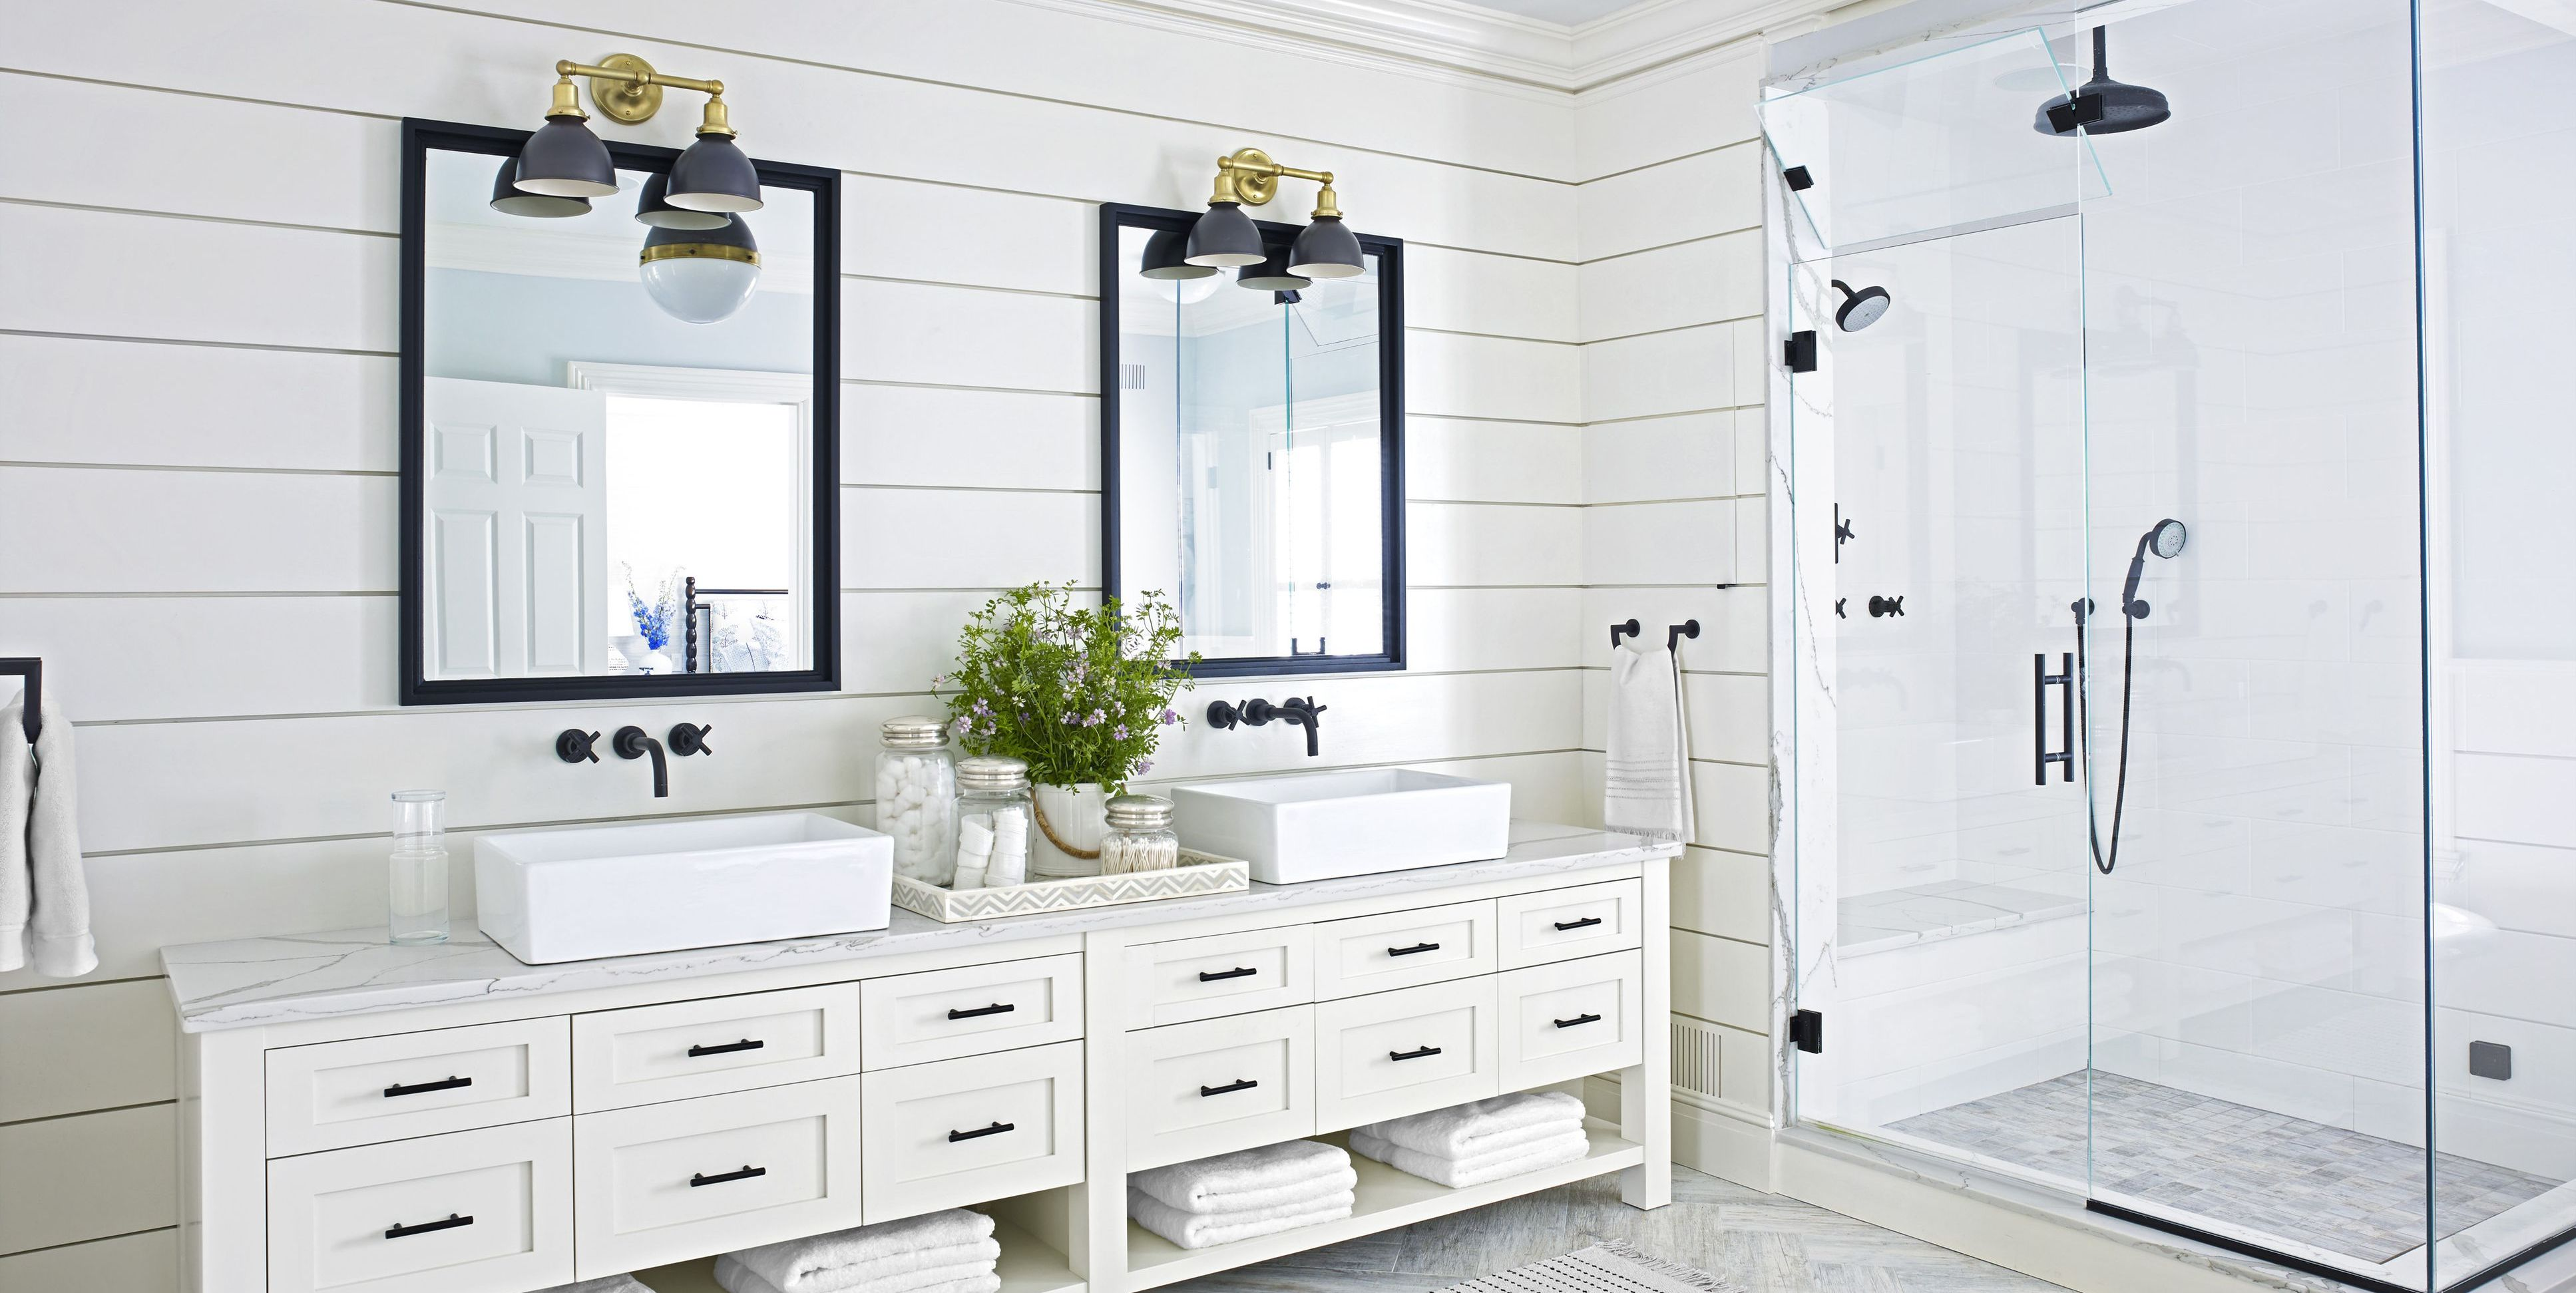 15 Black And White Bathroom Ideas Black White Tile